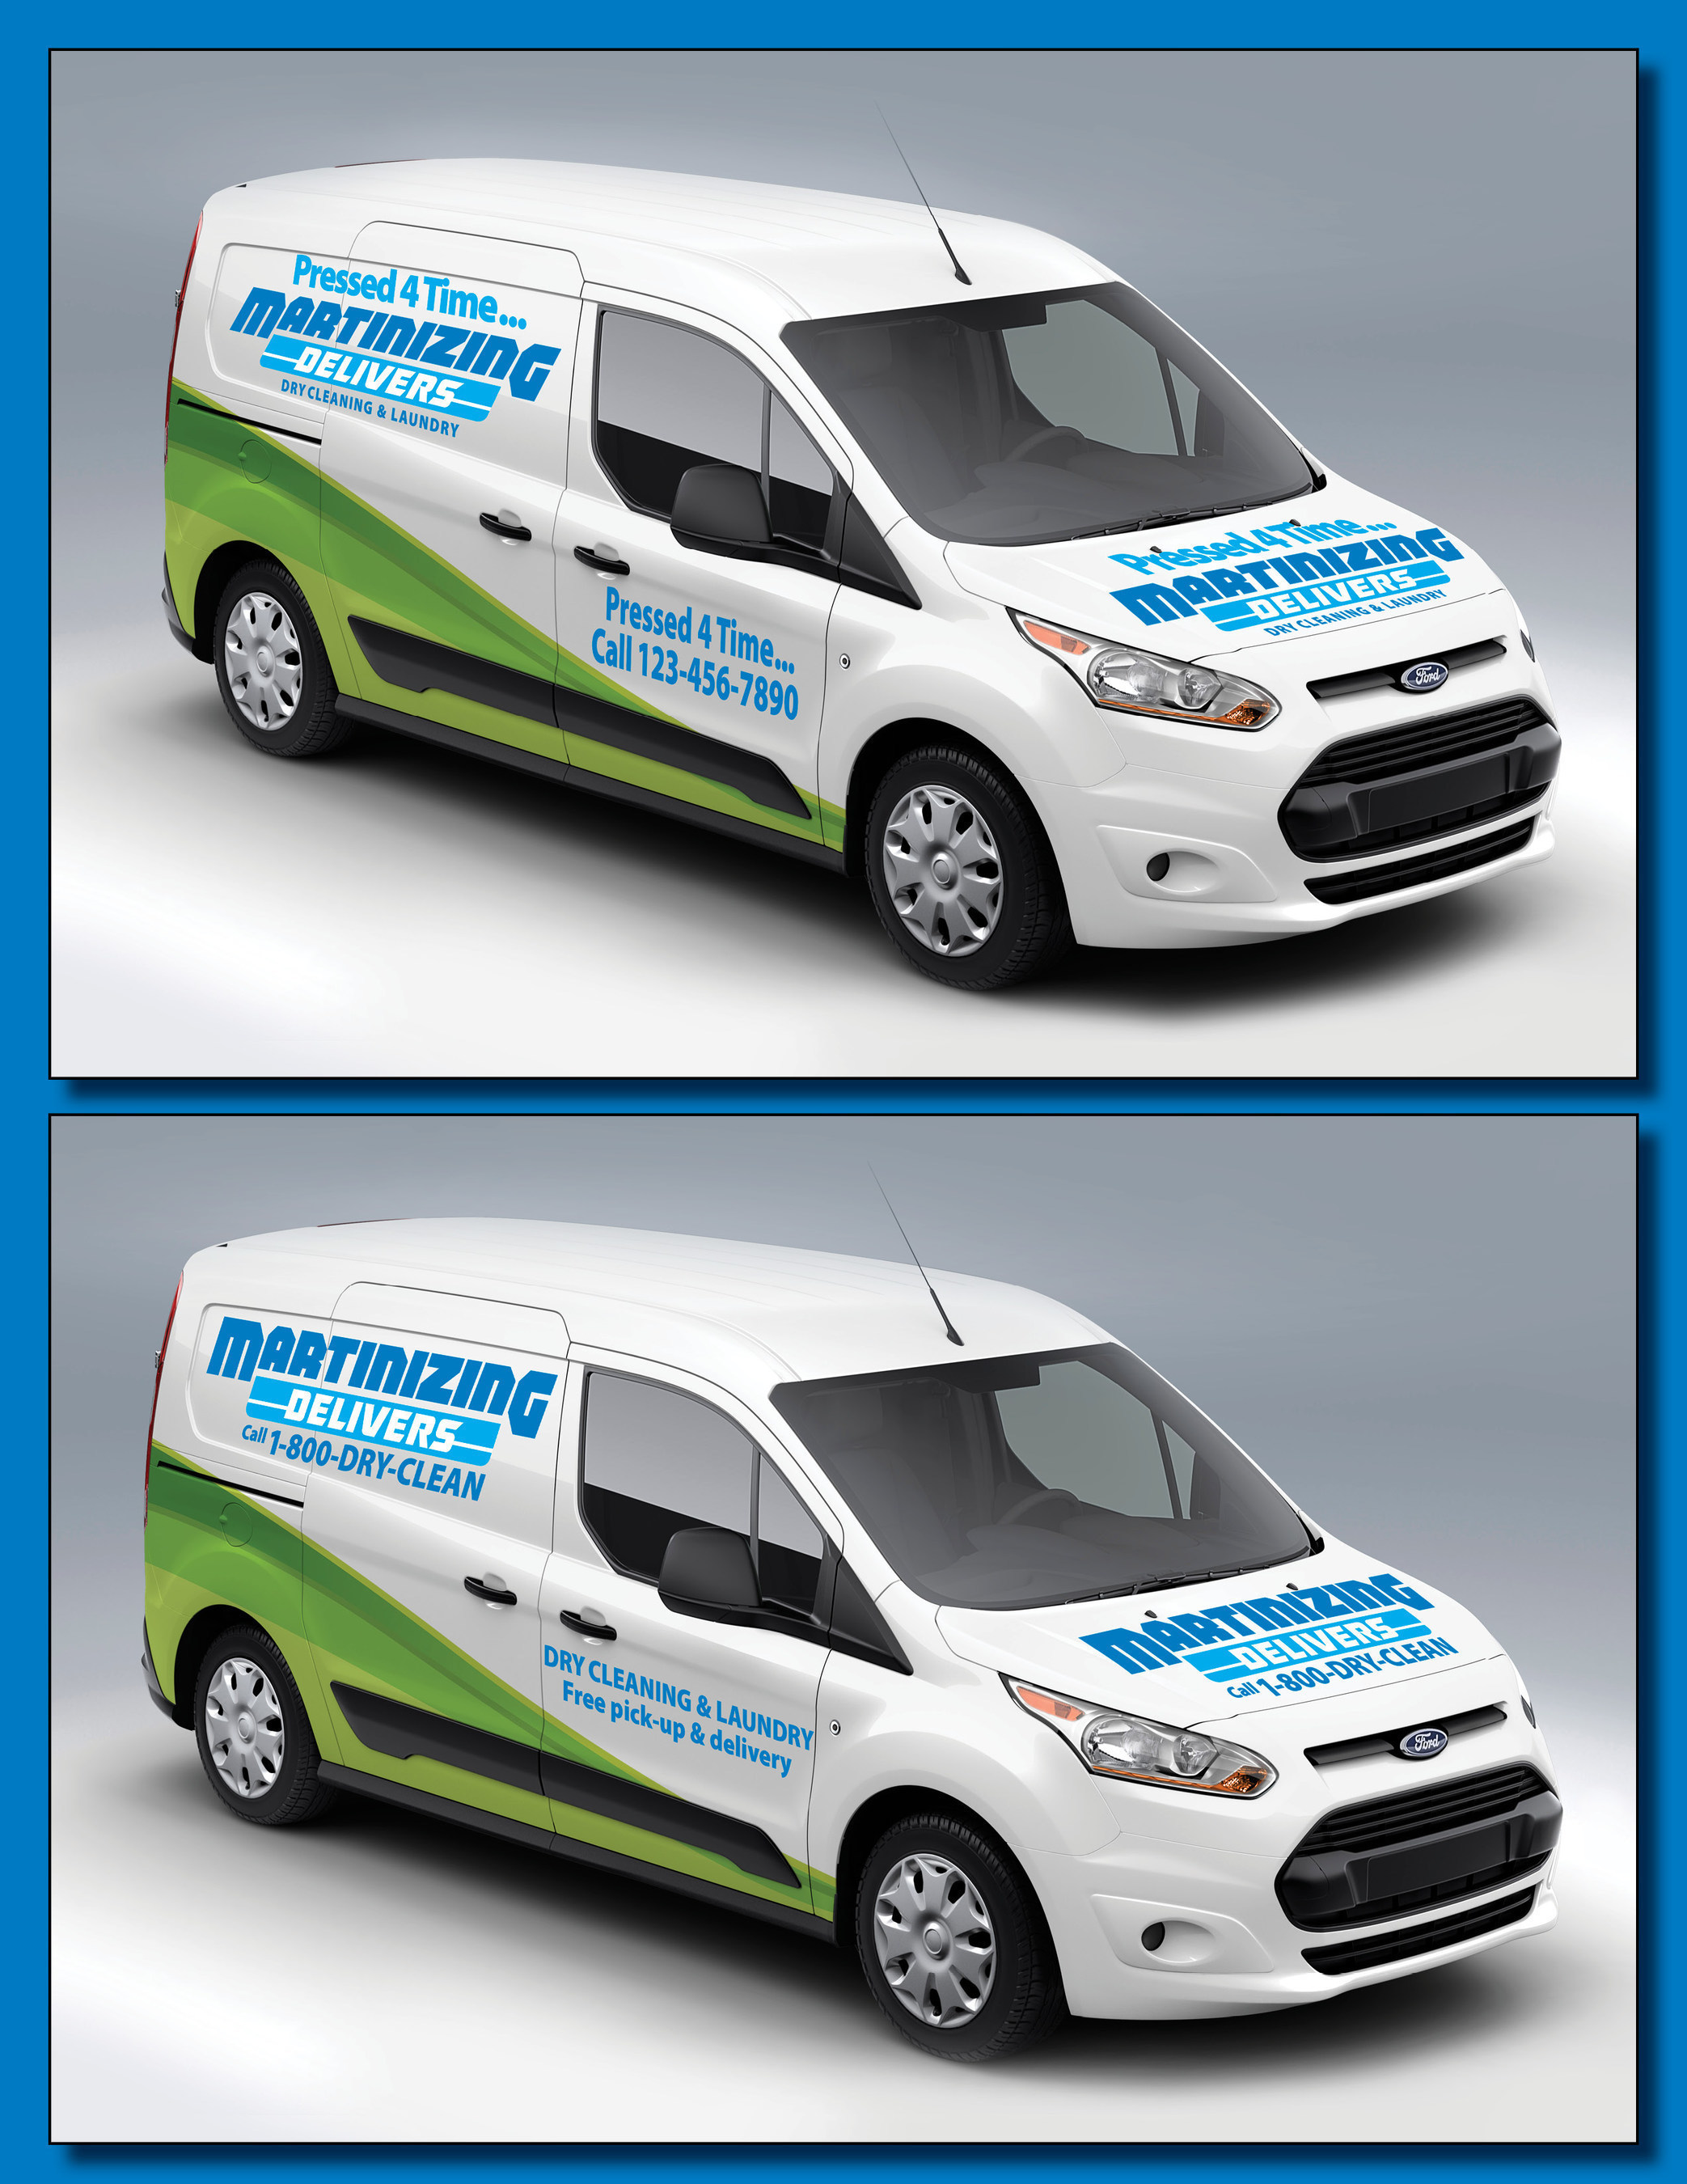 New van graphics for Martinizing Delivers